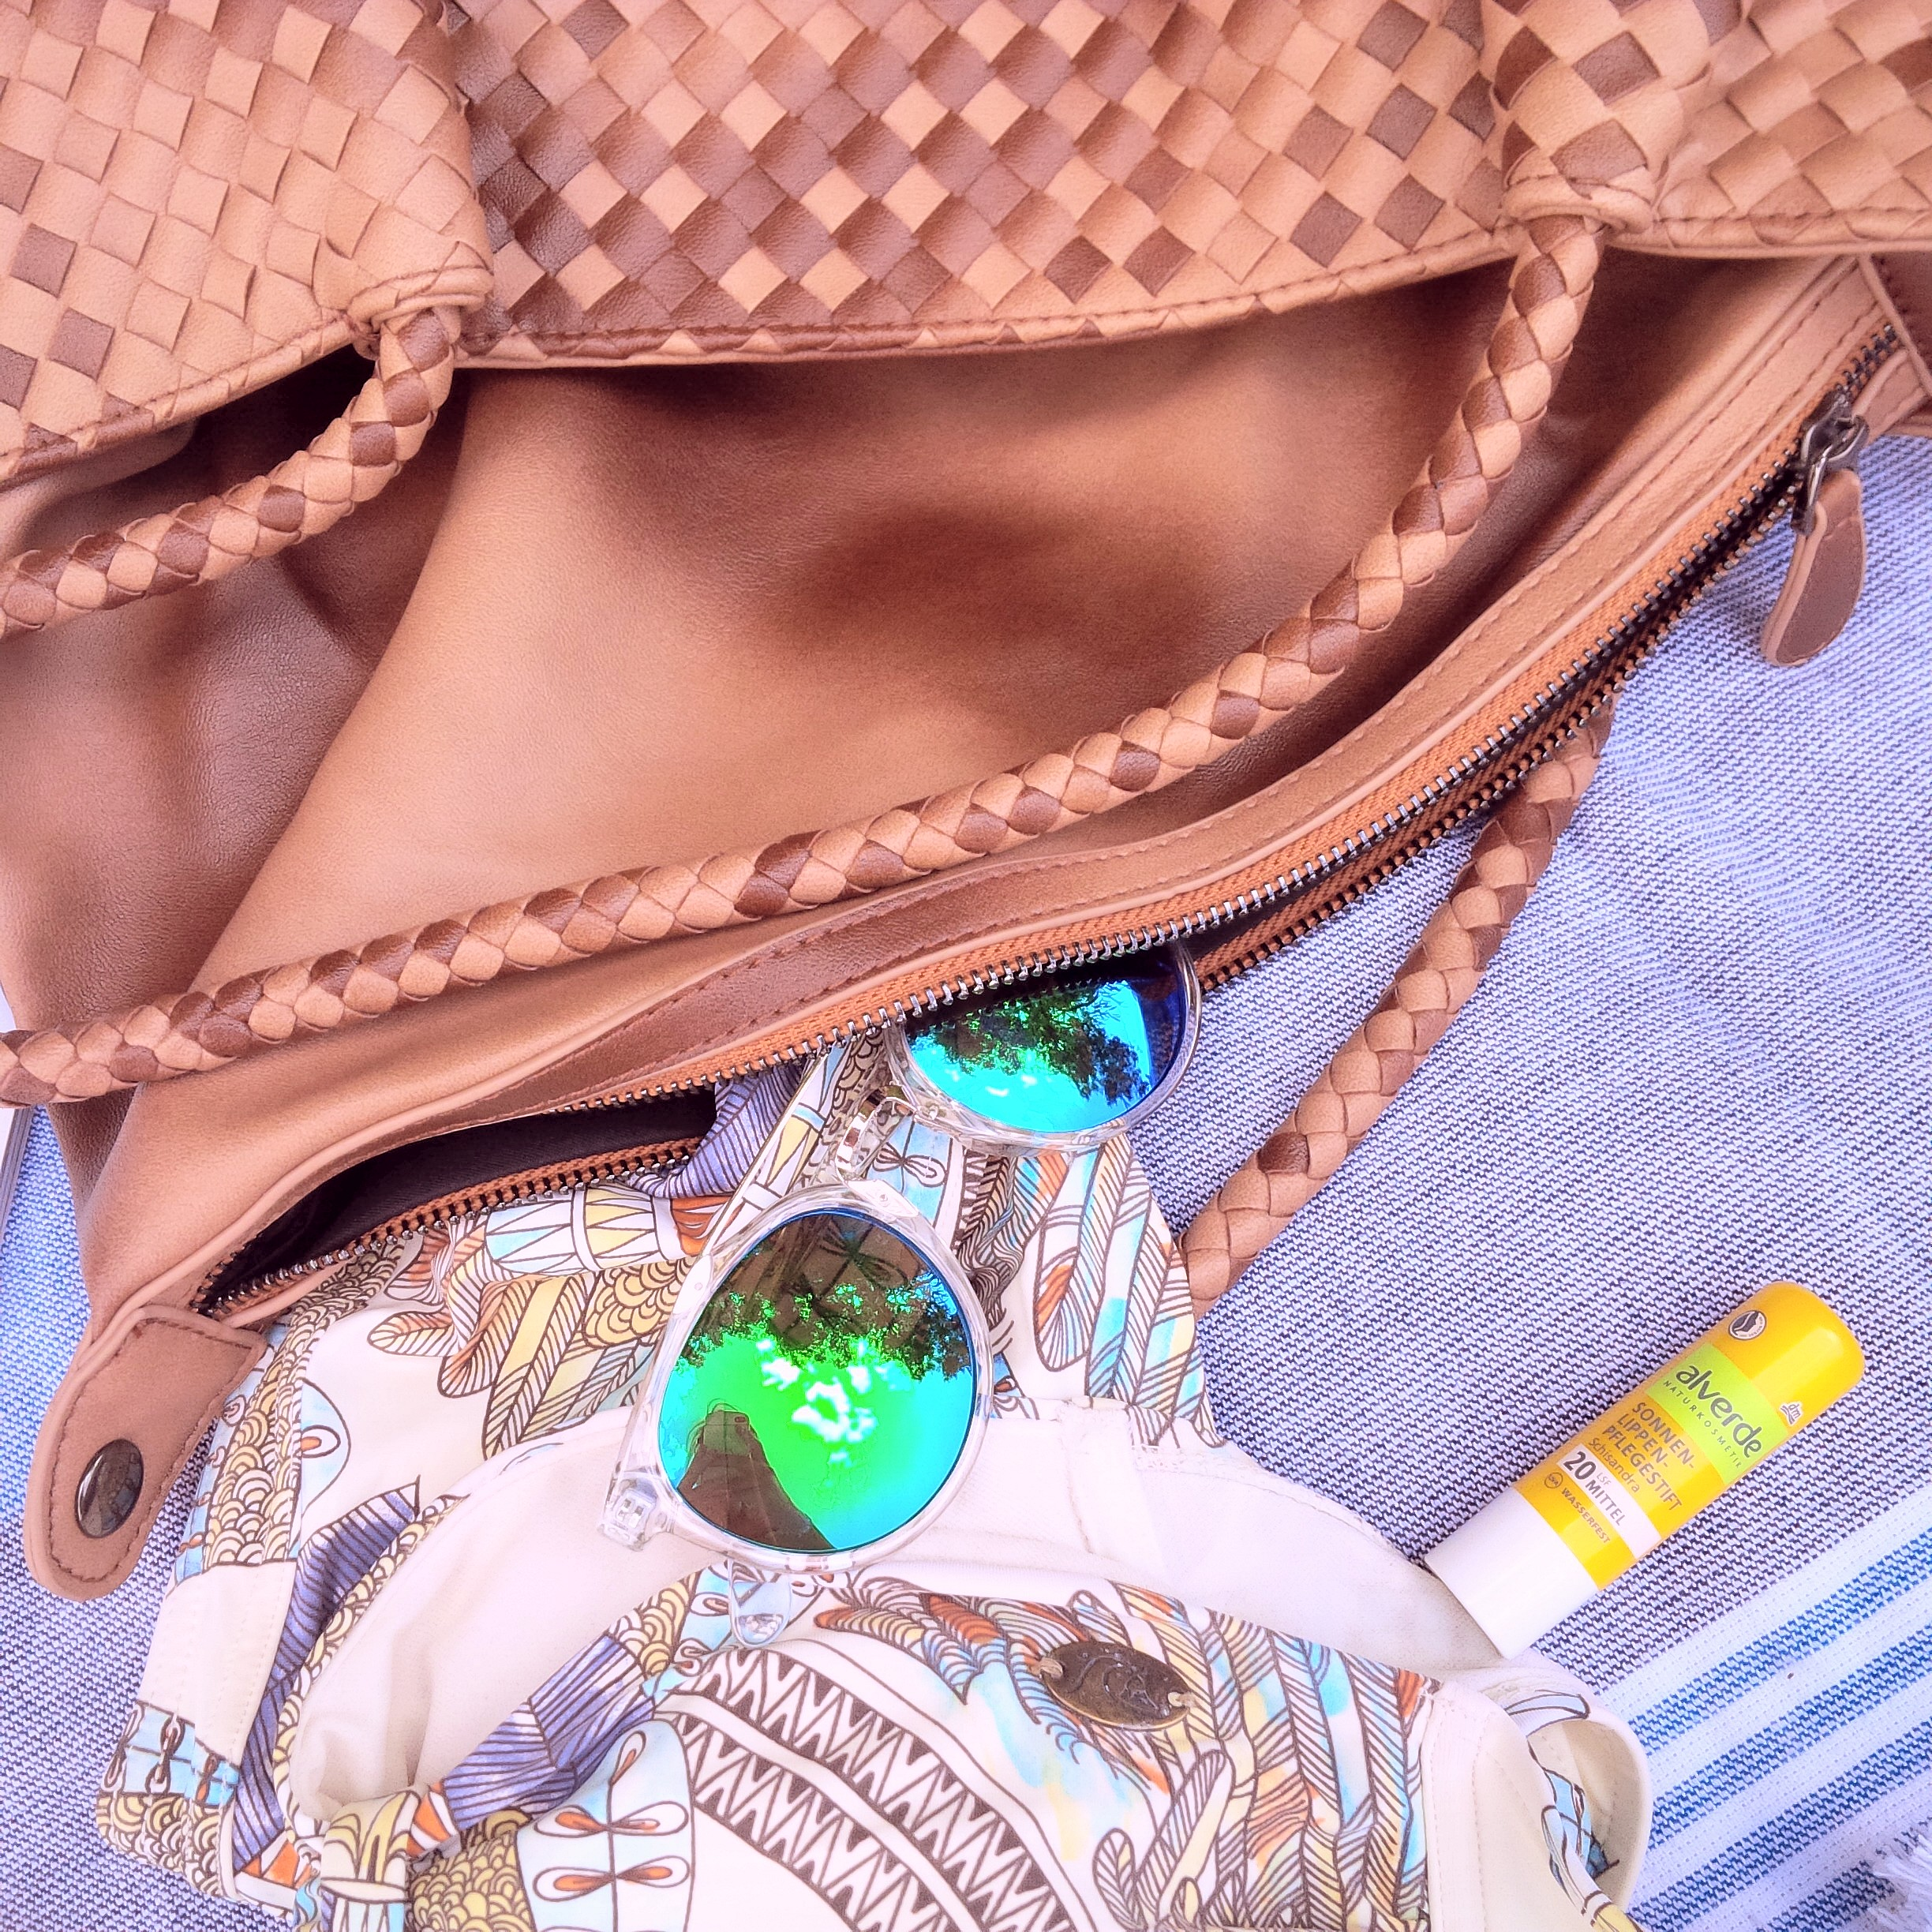 Summer Kick-Off. What's in My Bag & How to Get Ready For Summer. Inspiration. Liebe was ist. Summer Essentials. Tipps, Advice. Sponsored Post - Witt Weiden (8)